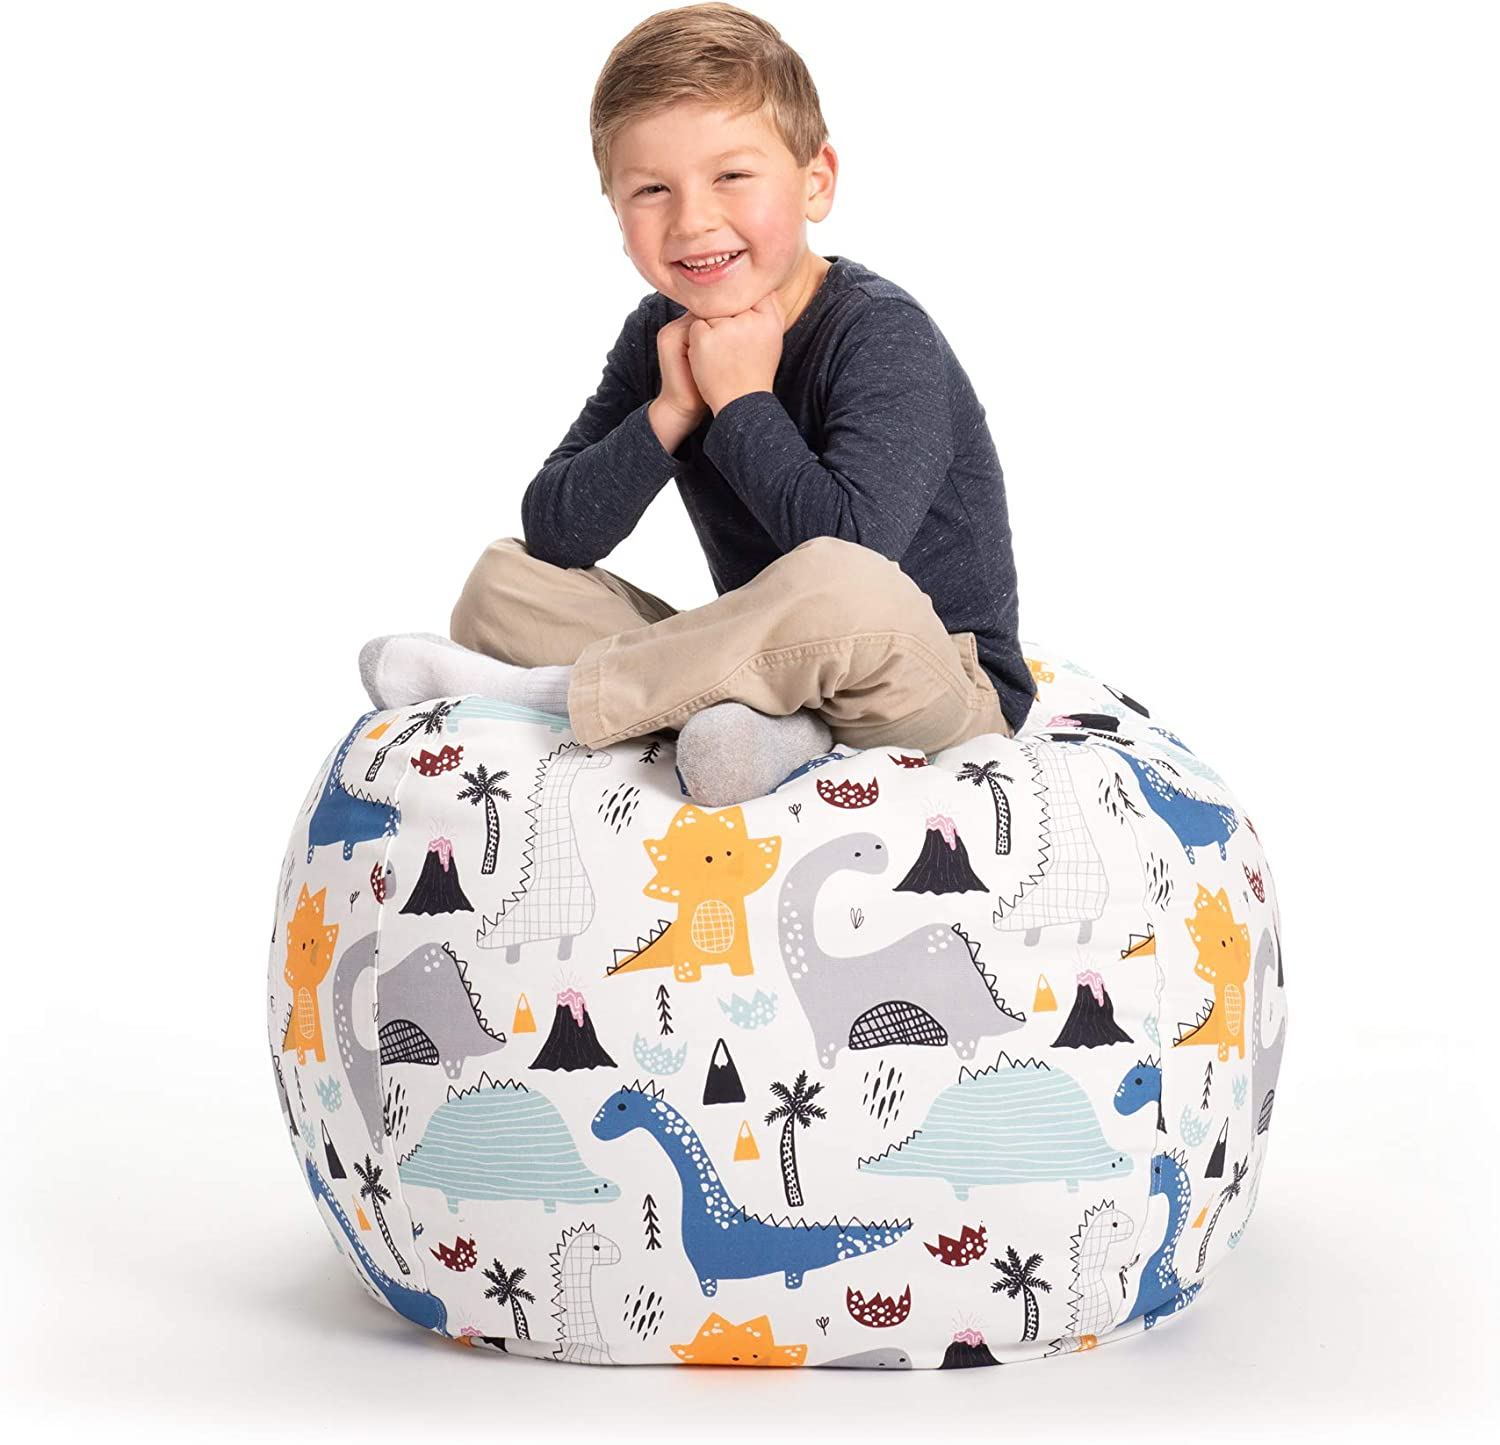 "B07F8FKNCK Creative QT Stuffed Animal Storage Bean Bag Chair - Large Stuff 'n Sit Organization for Kids Toy Storage - Available in a Variety of Sizes and Colors (33"", Dinosaur) 71zAX1qJBGL"